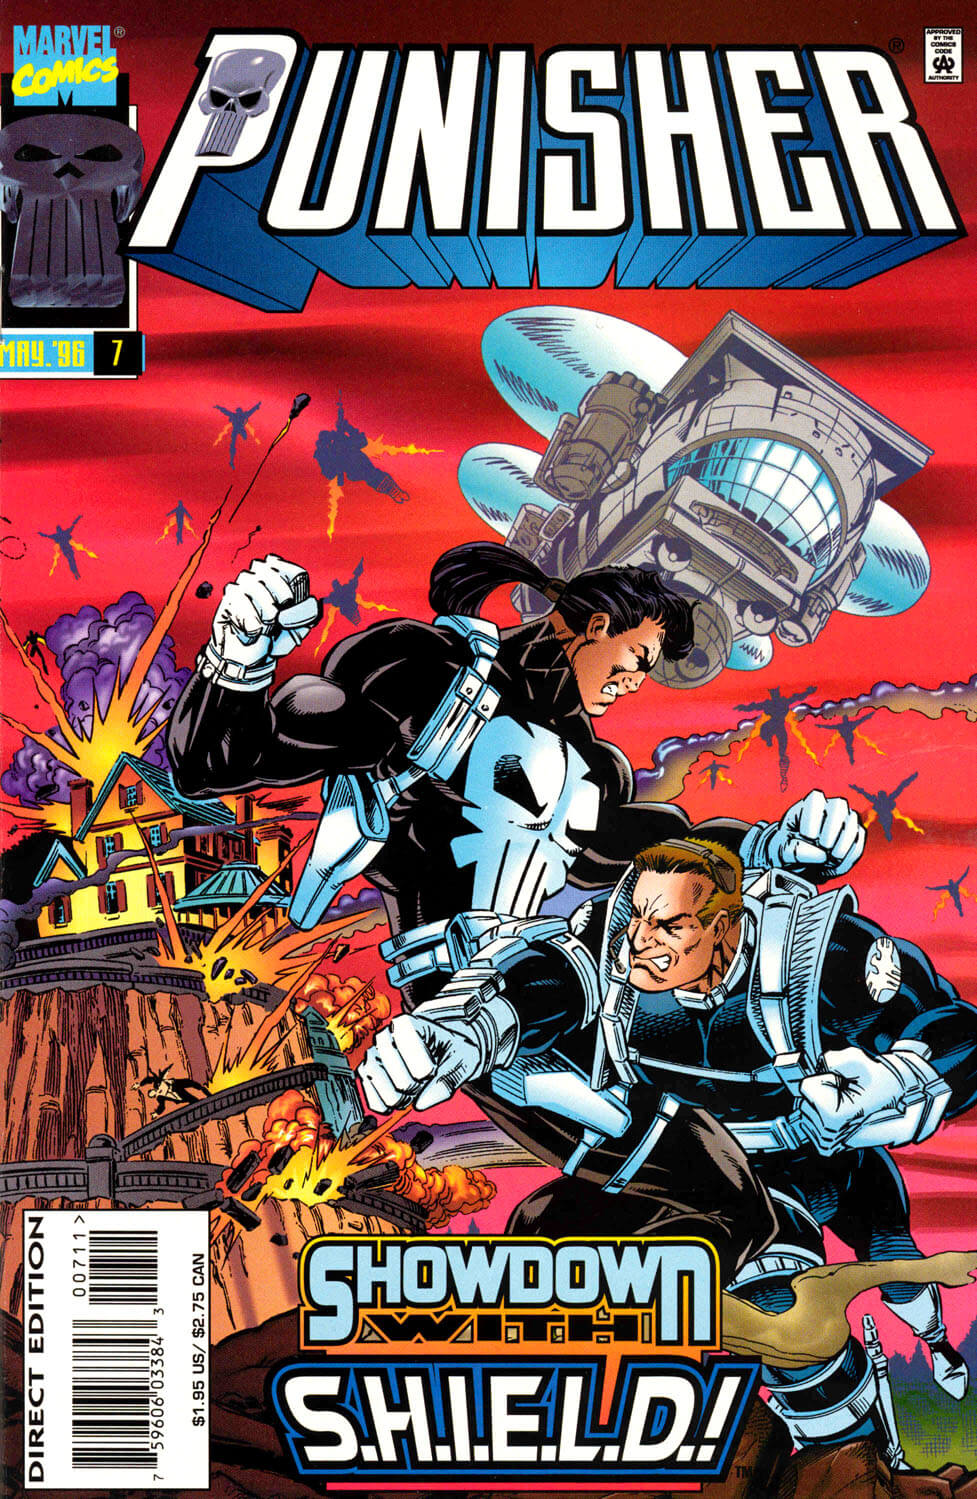 The Punisher Vol 3 #7